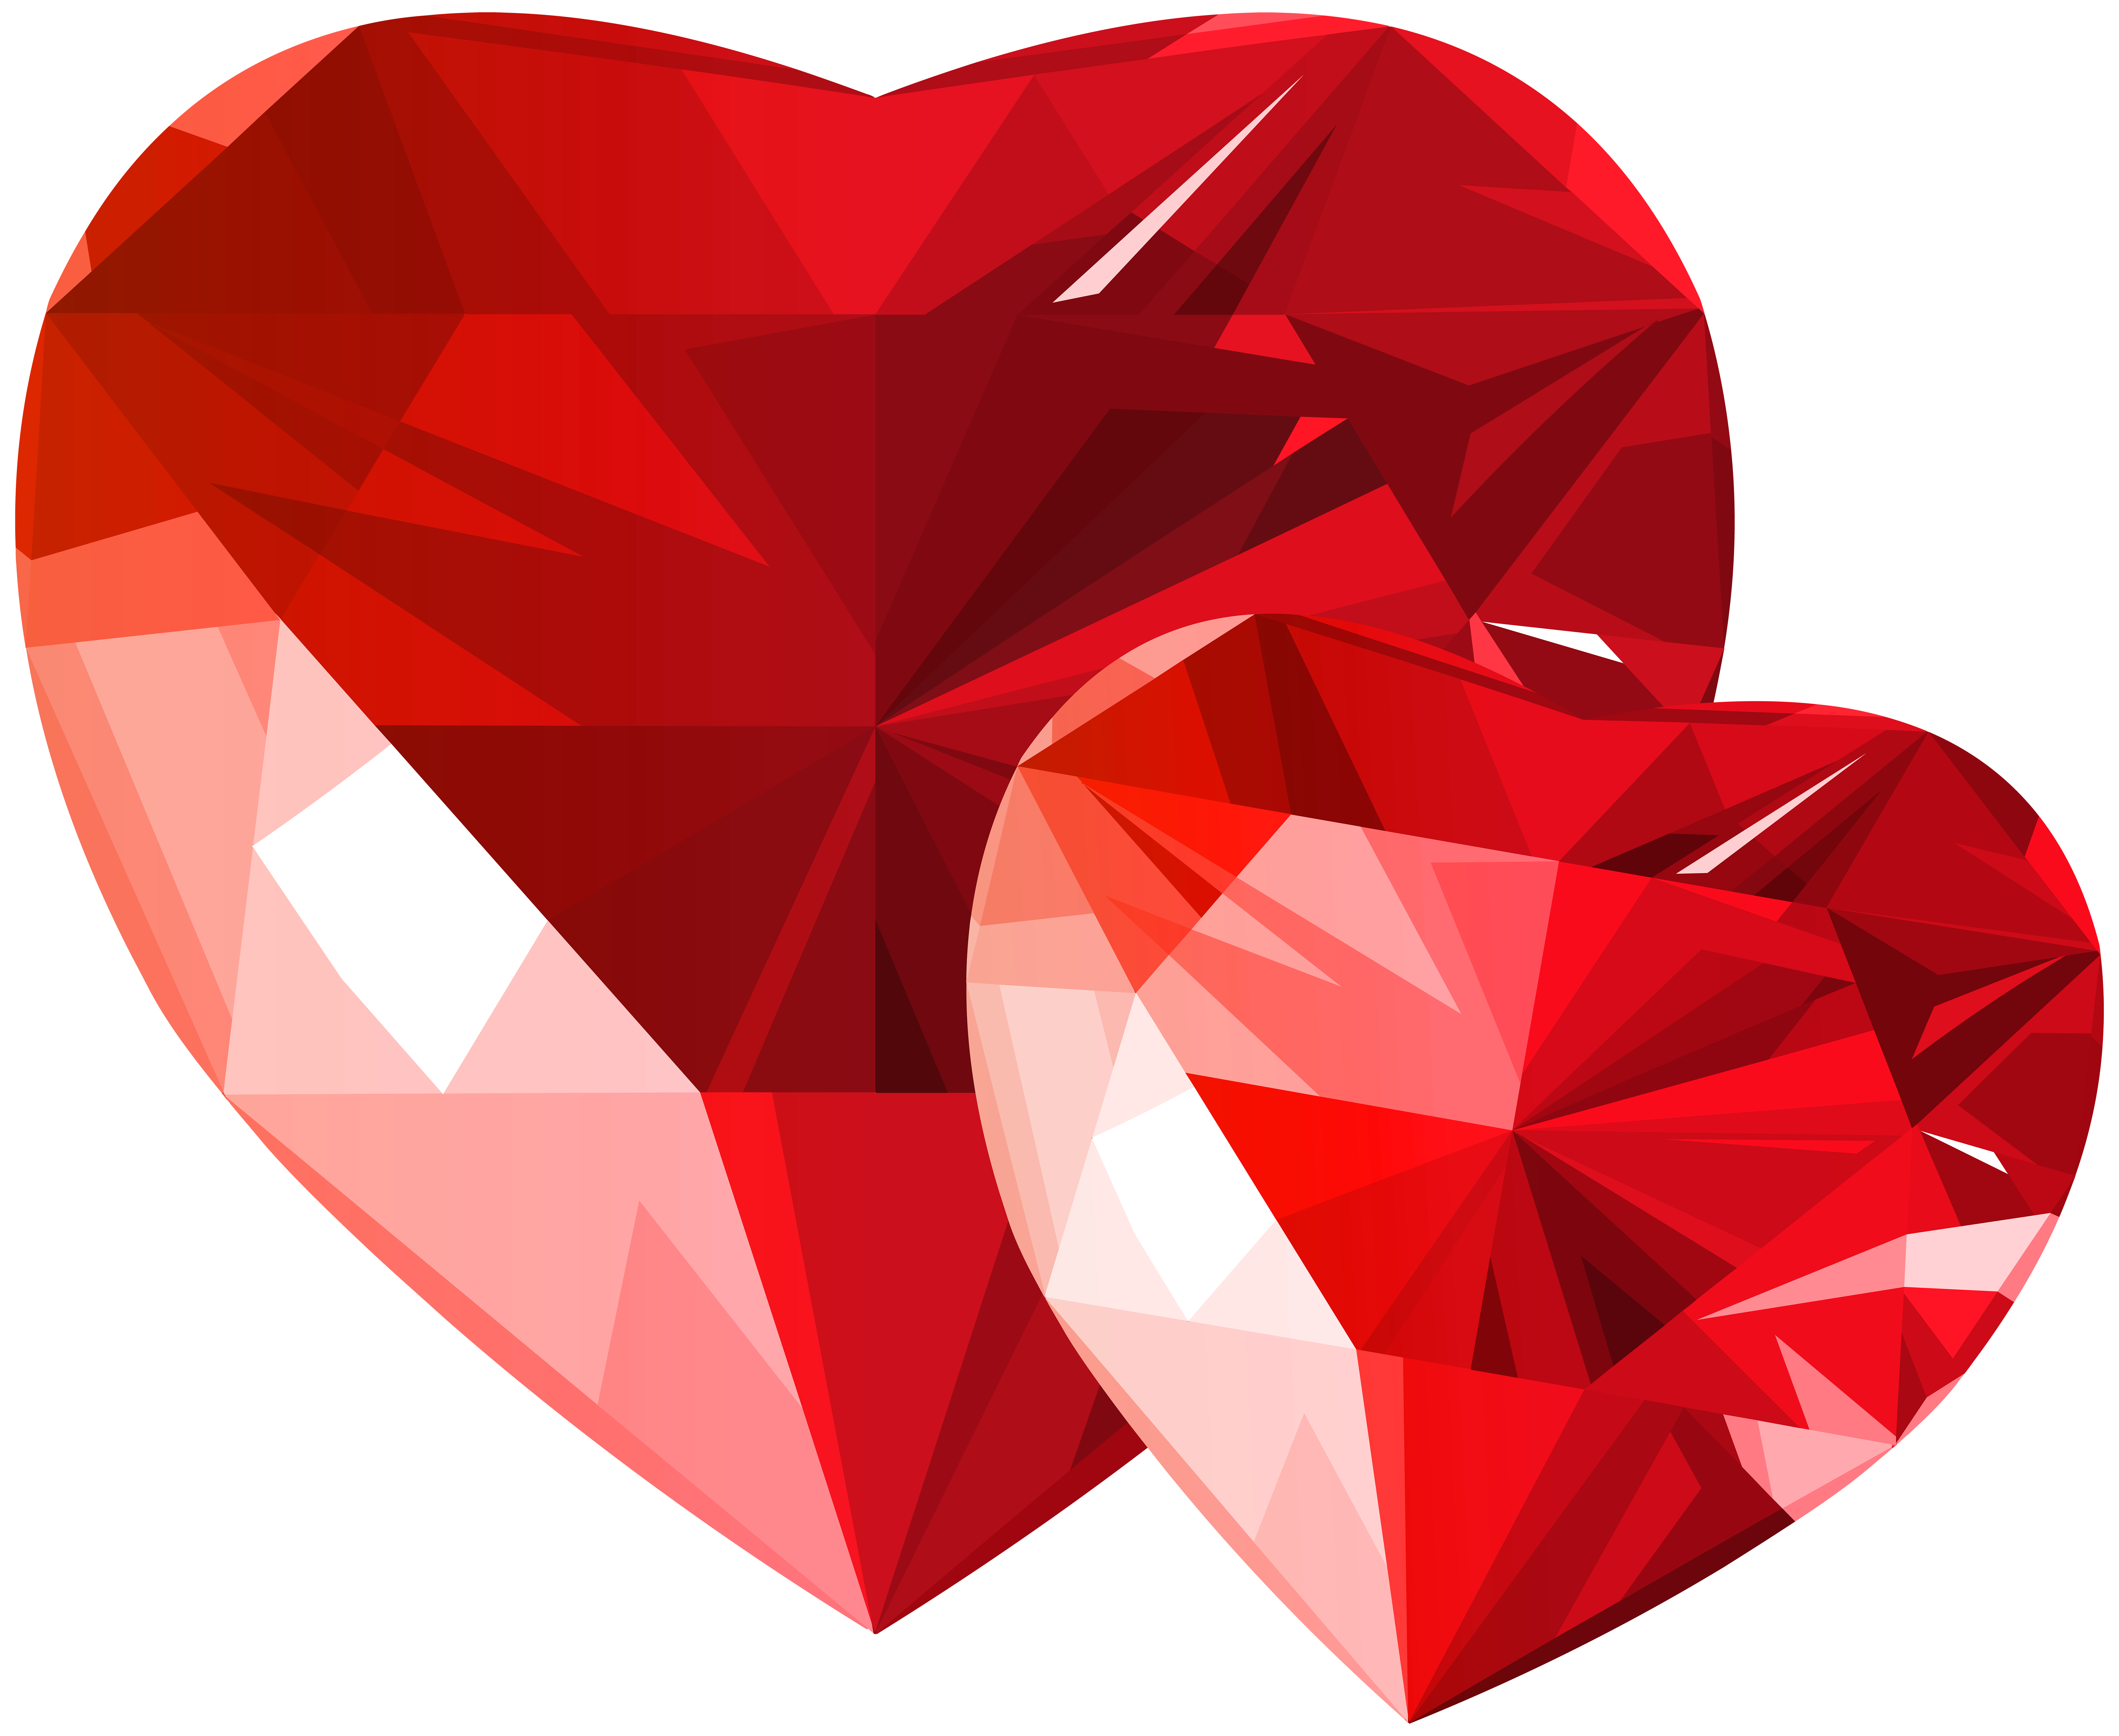 Diamond Hearts Red Transparent PNG Clip Art.